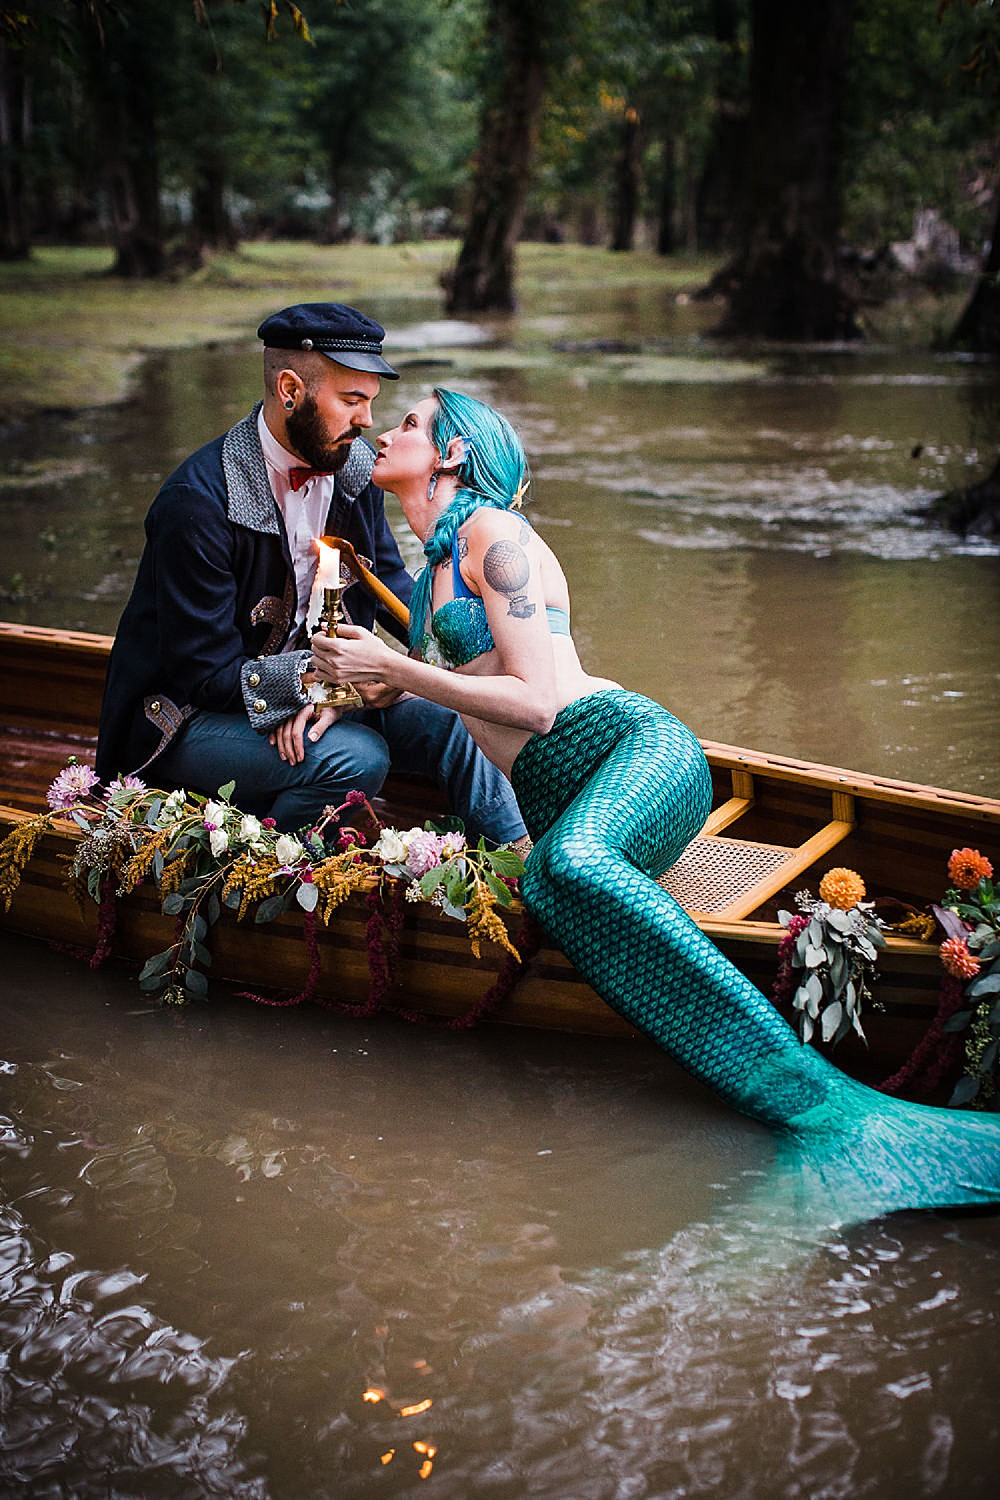 mermaid_fantasy_photography_styled_shoot18.jpg